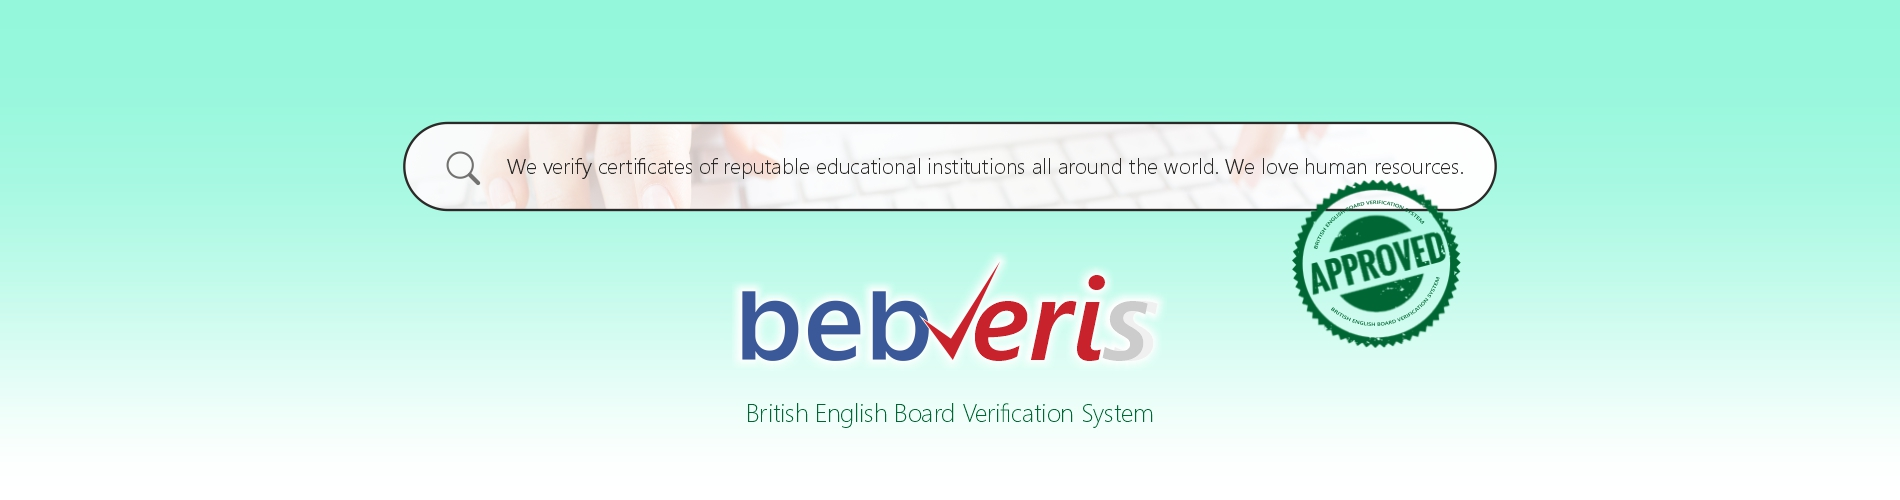 British English Board Verification System - BEBVERIS